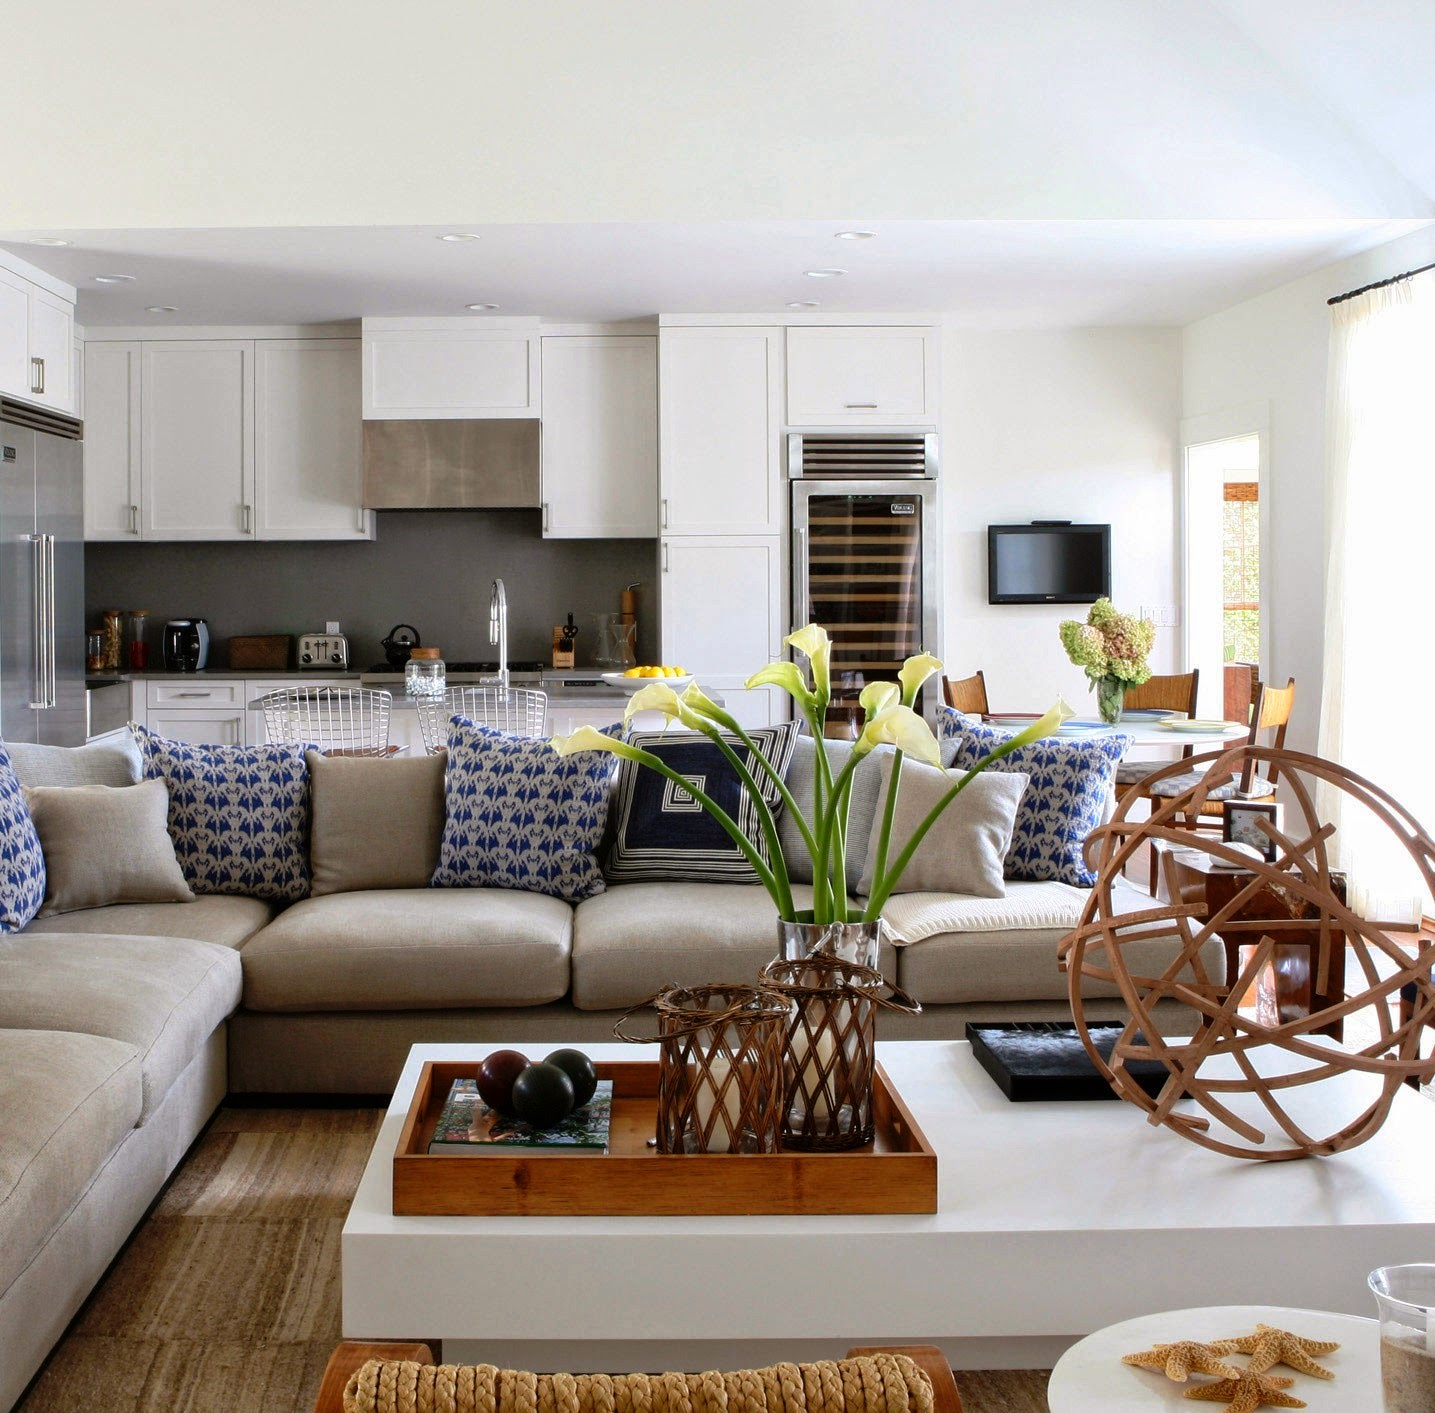 Designing a beach themed living room ideas for home decor - Beach themed living room ideas ...